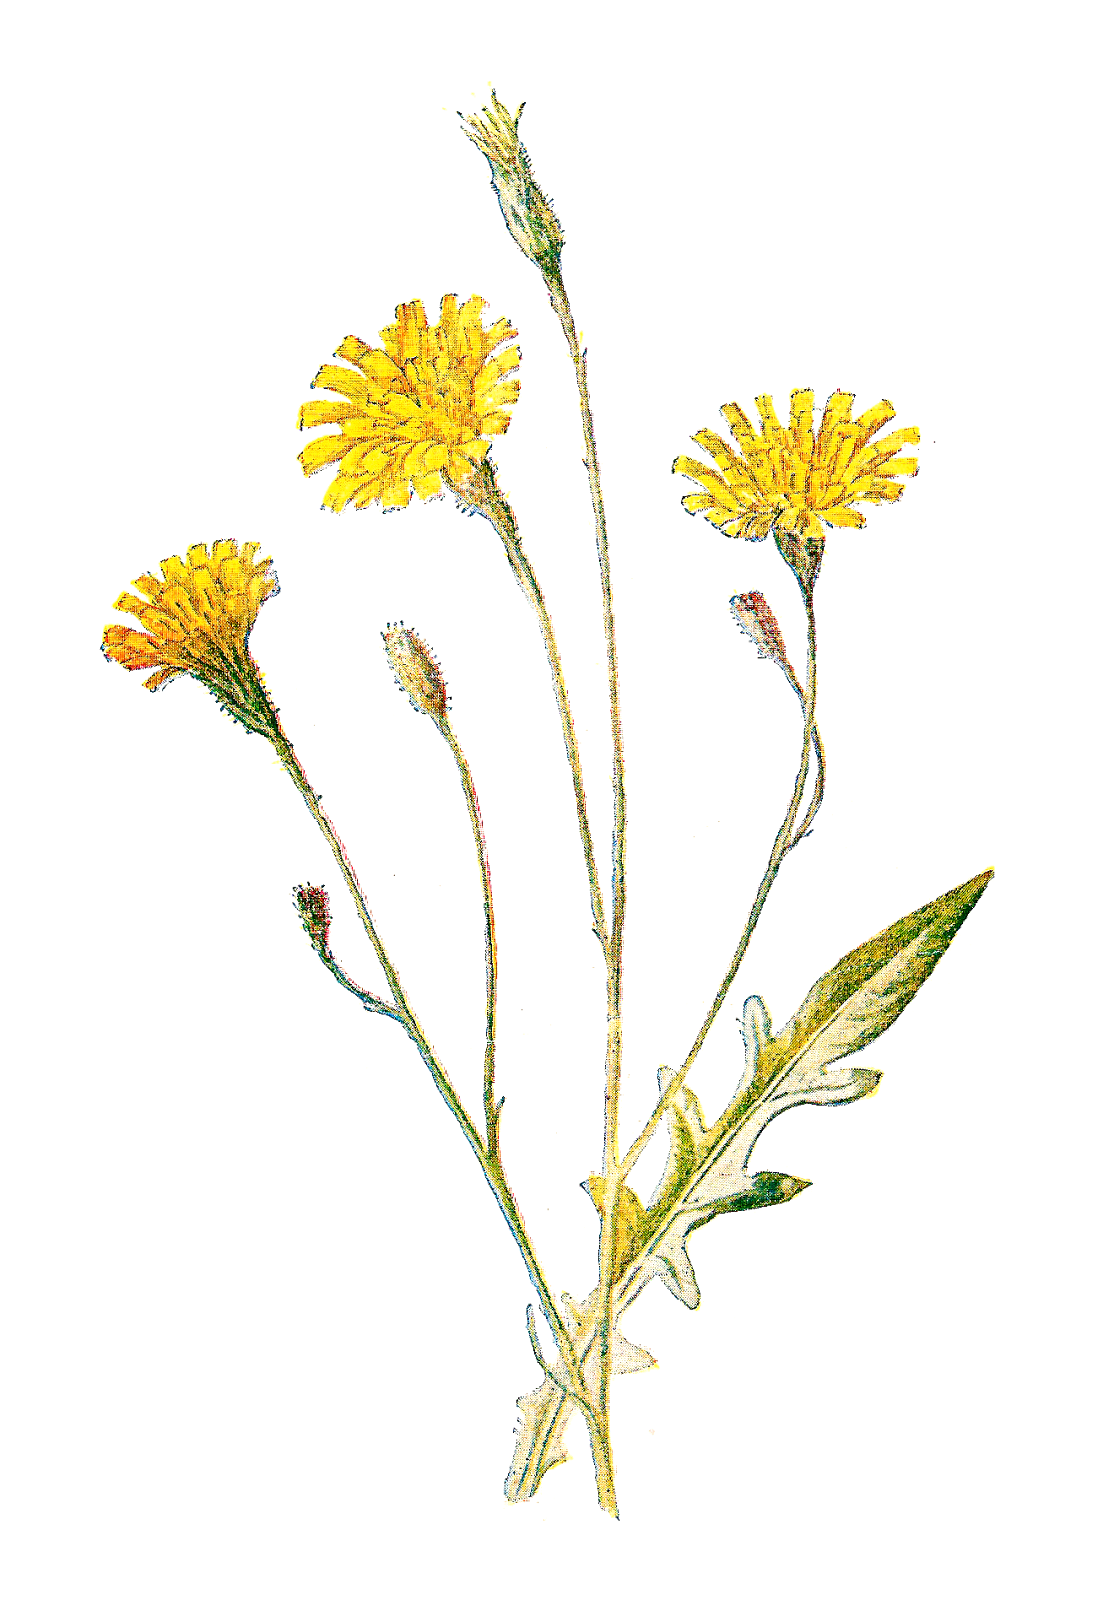 Wildflower clipart #12, Download drawings